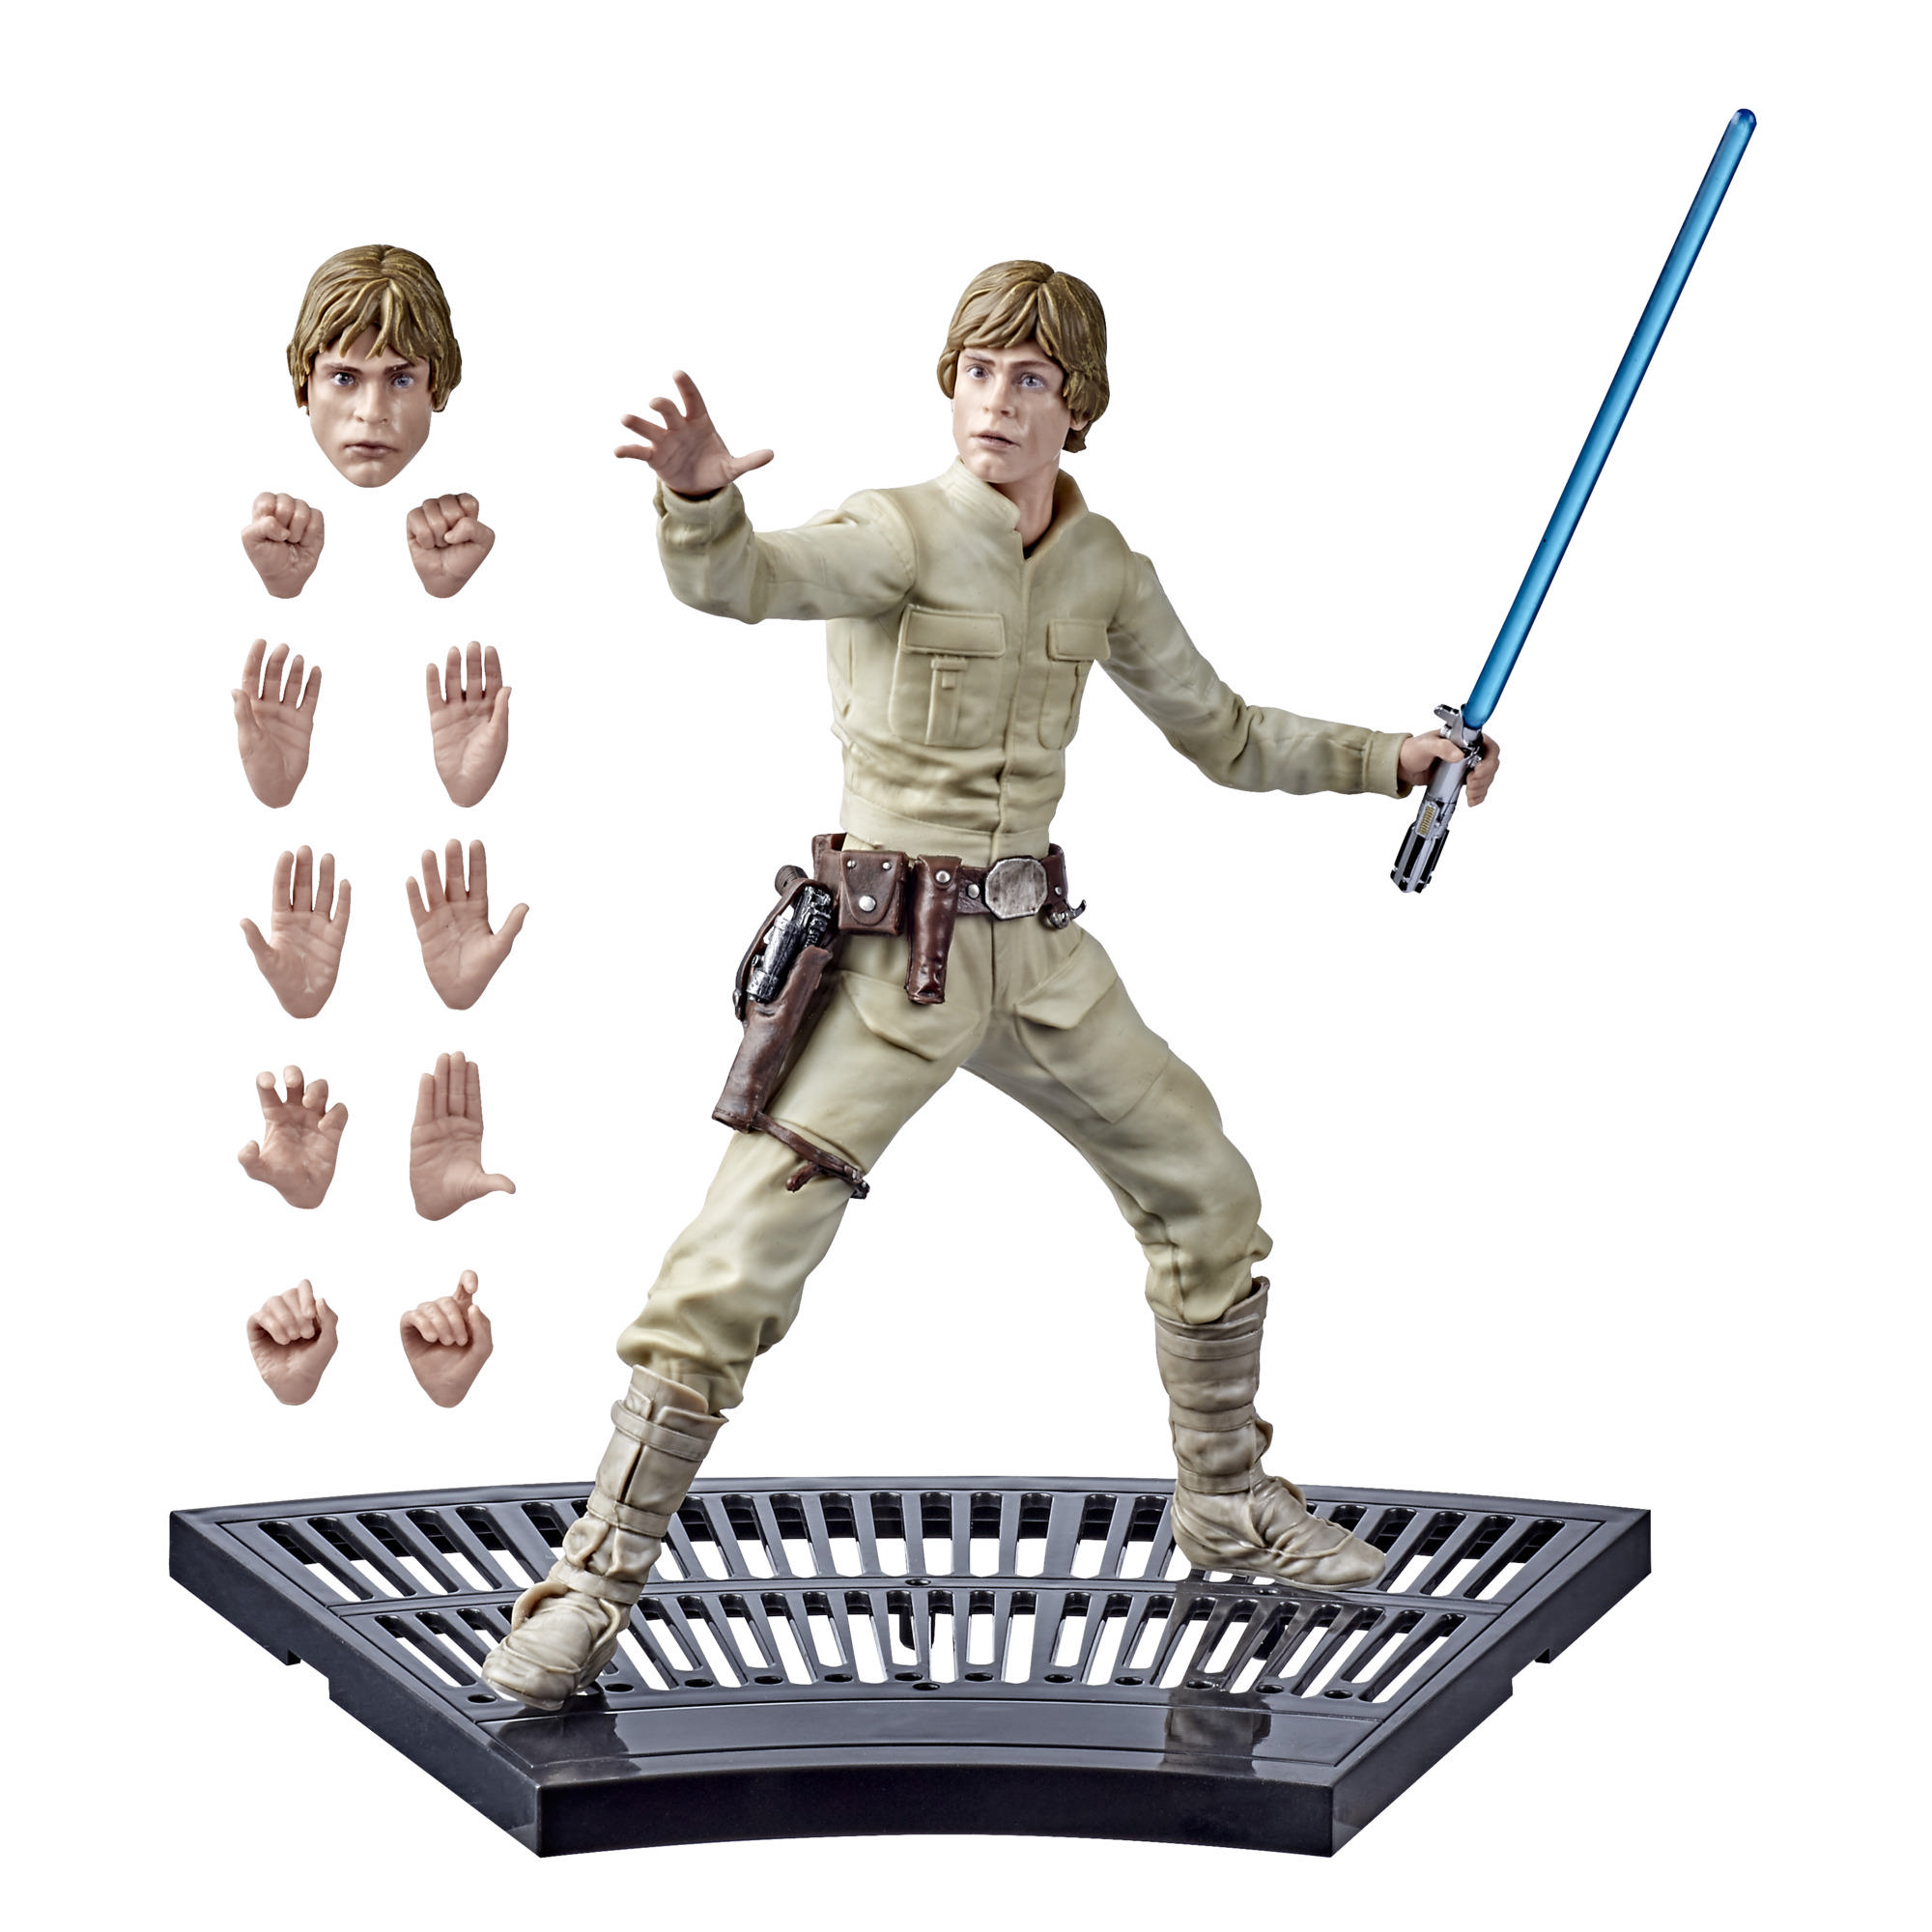 Juguete de Luke Skywalker de Star Wars The Black Series Hyperreal Star Wars: El Imperio contraataca, figura de acción de 20 cm